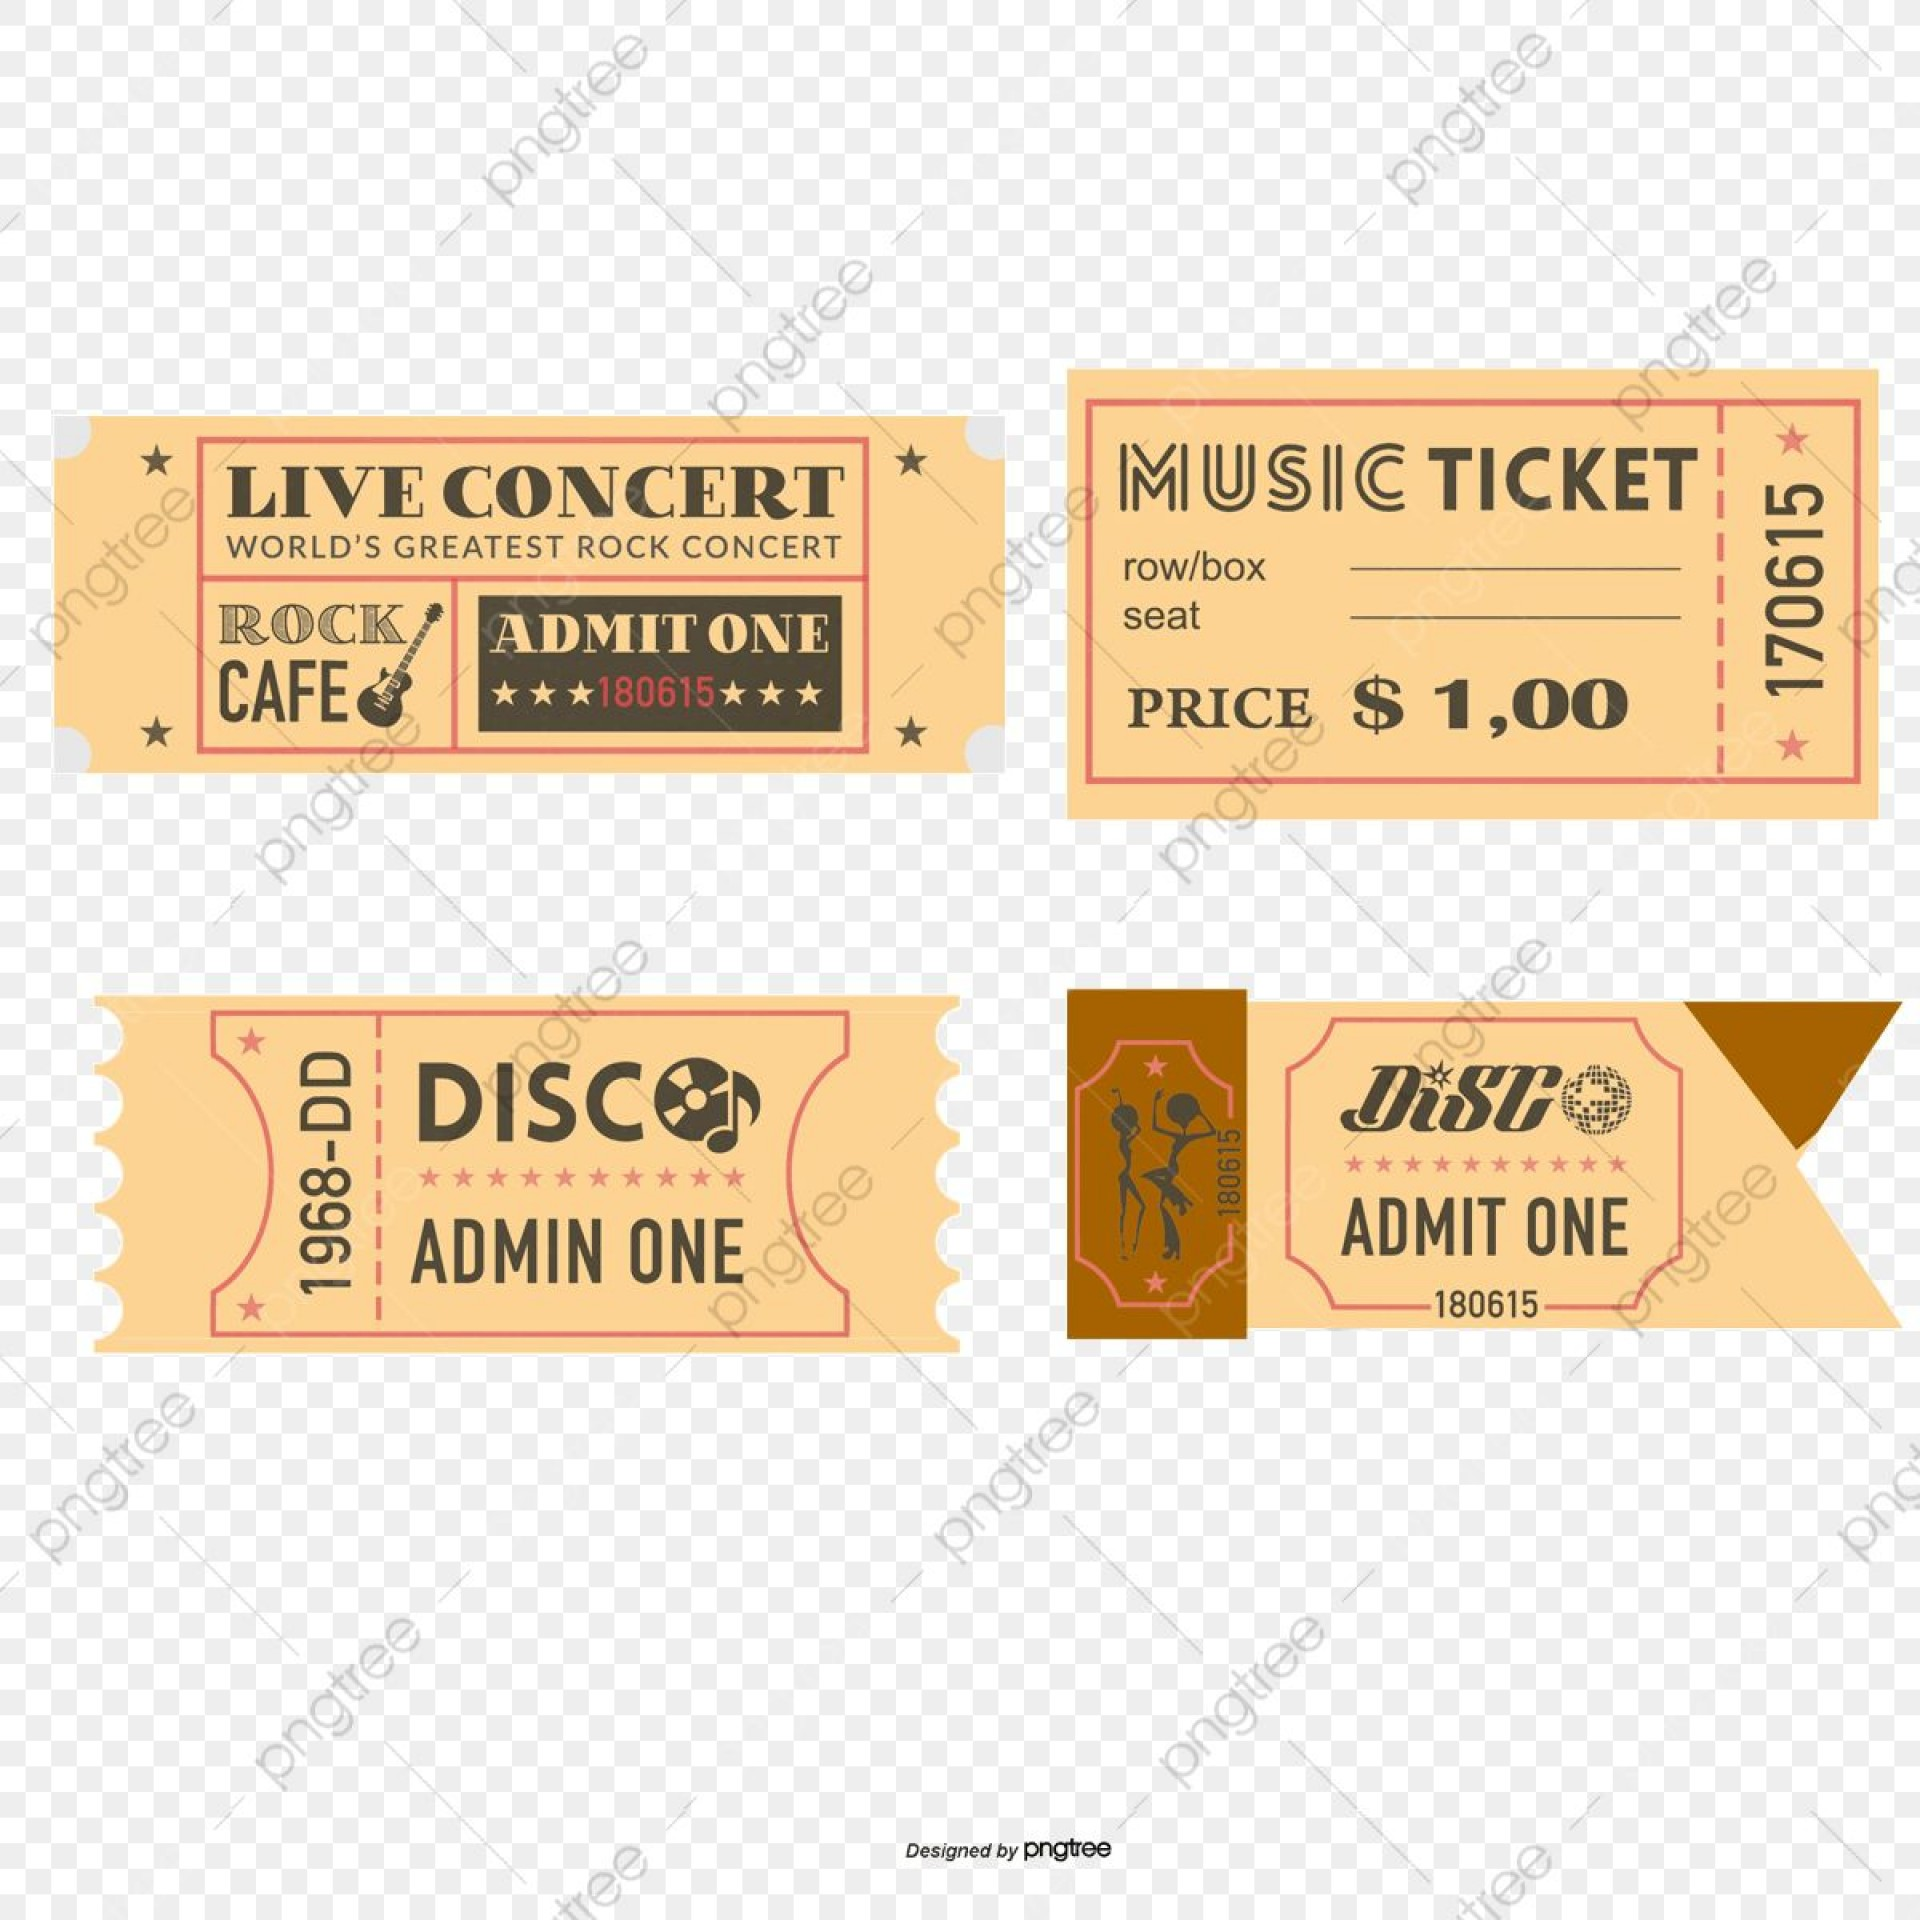 006 Unbelievable Vintage Concert Ticket Template Free Download Picture 1920